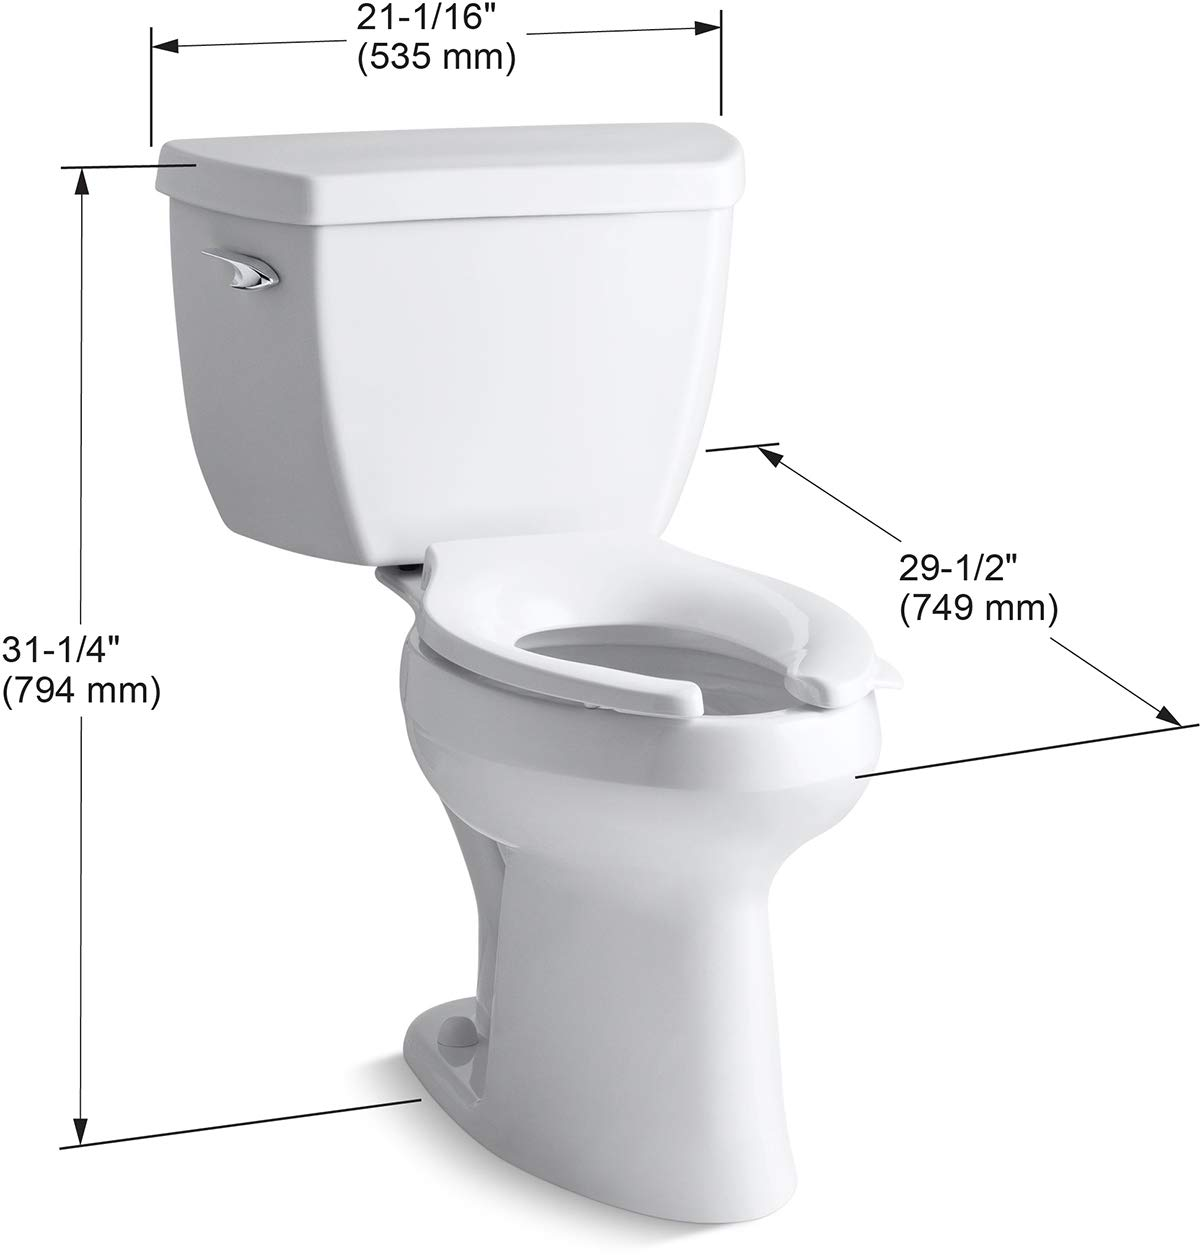 Best Toilets 2020.Kohler K 3493 0 Classic Review Best Toilets 2020 Our Top